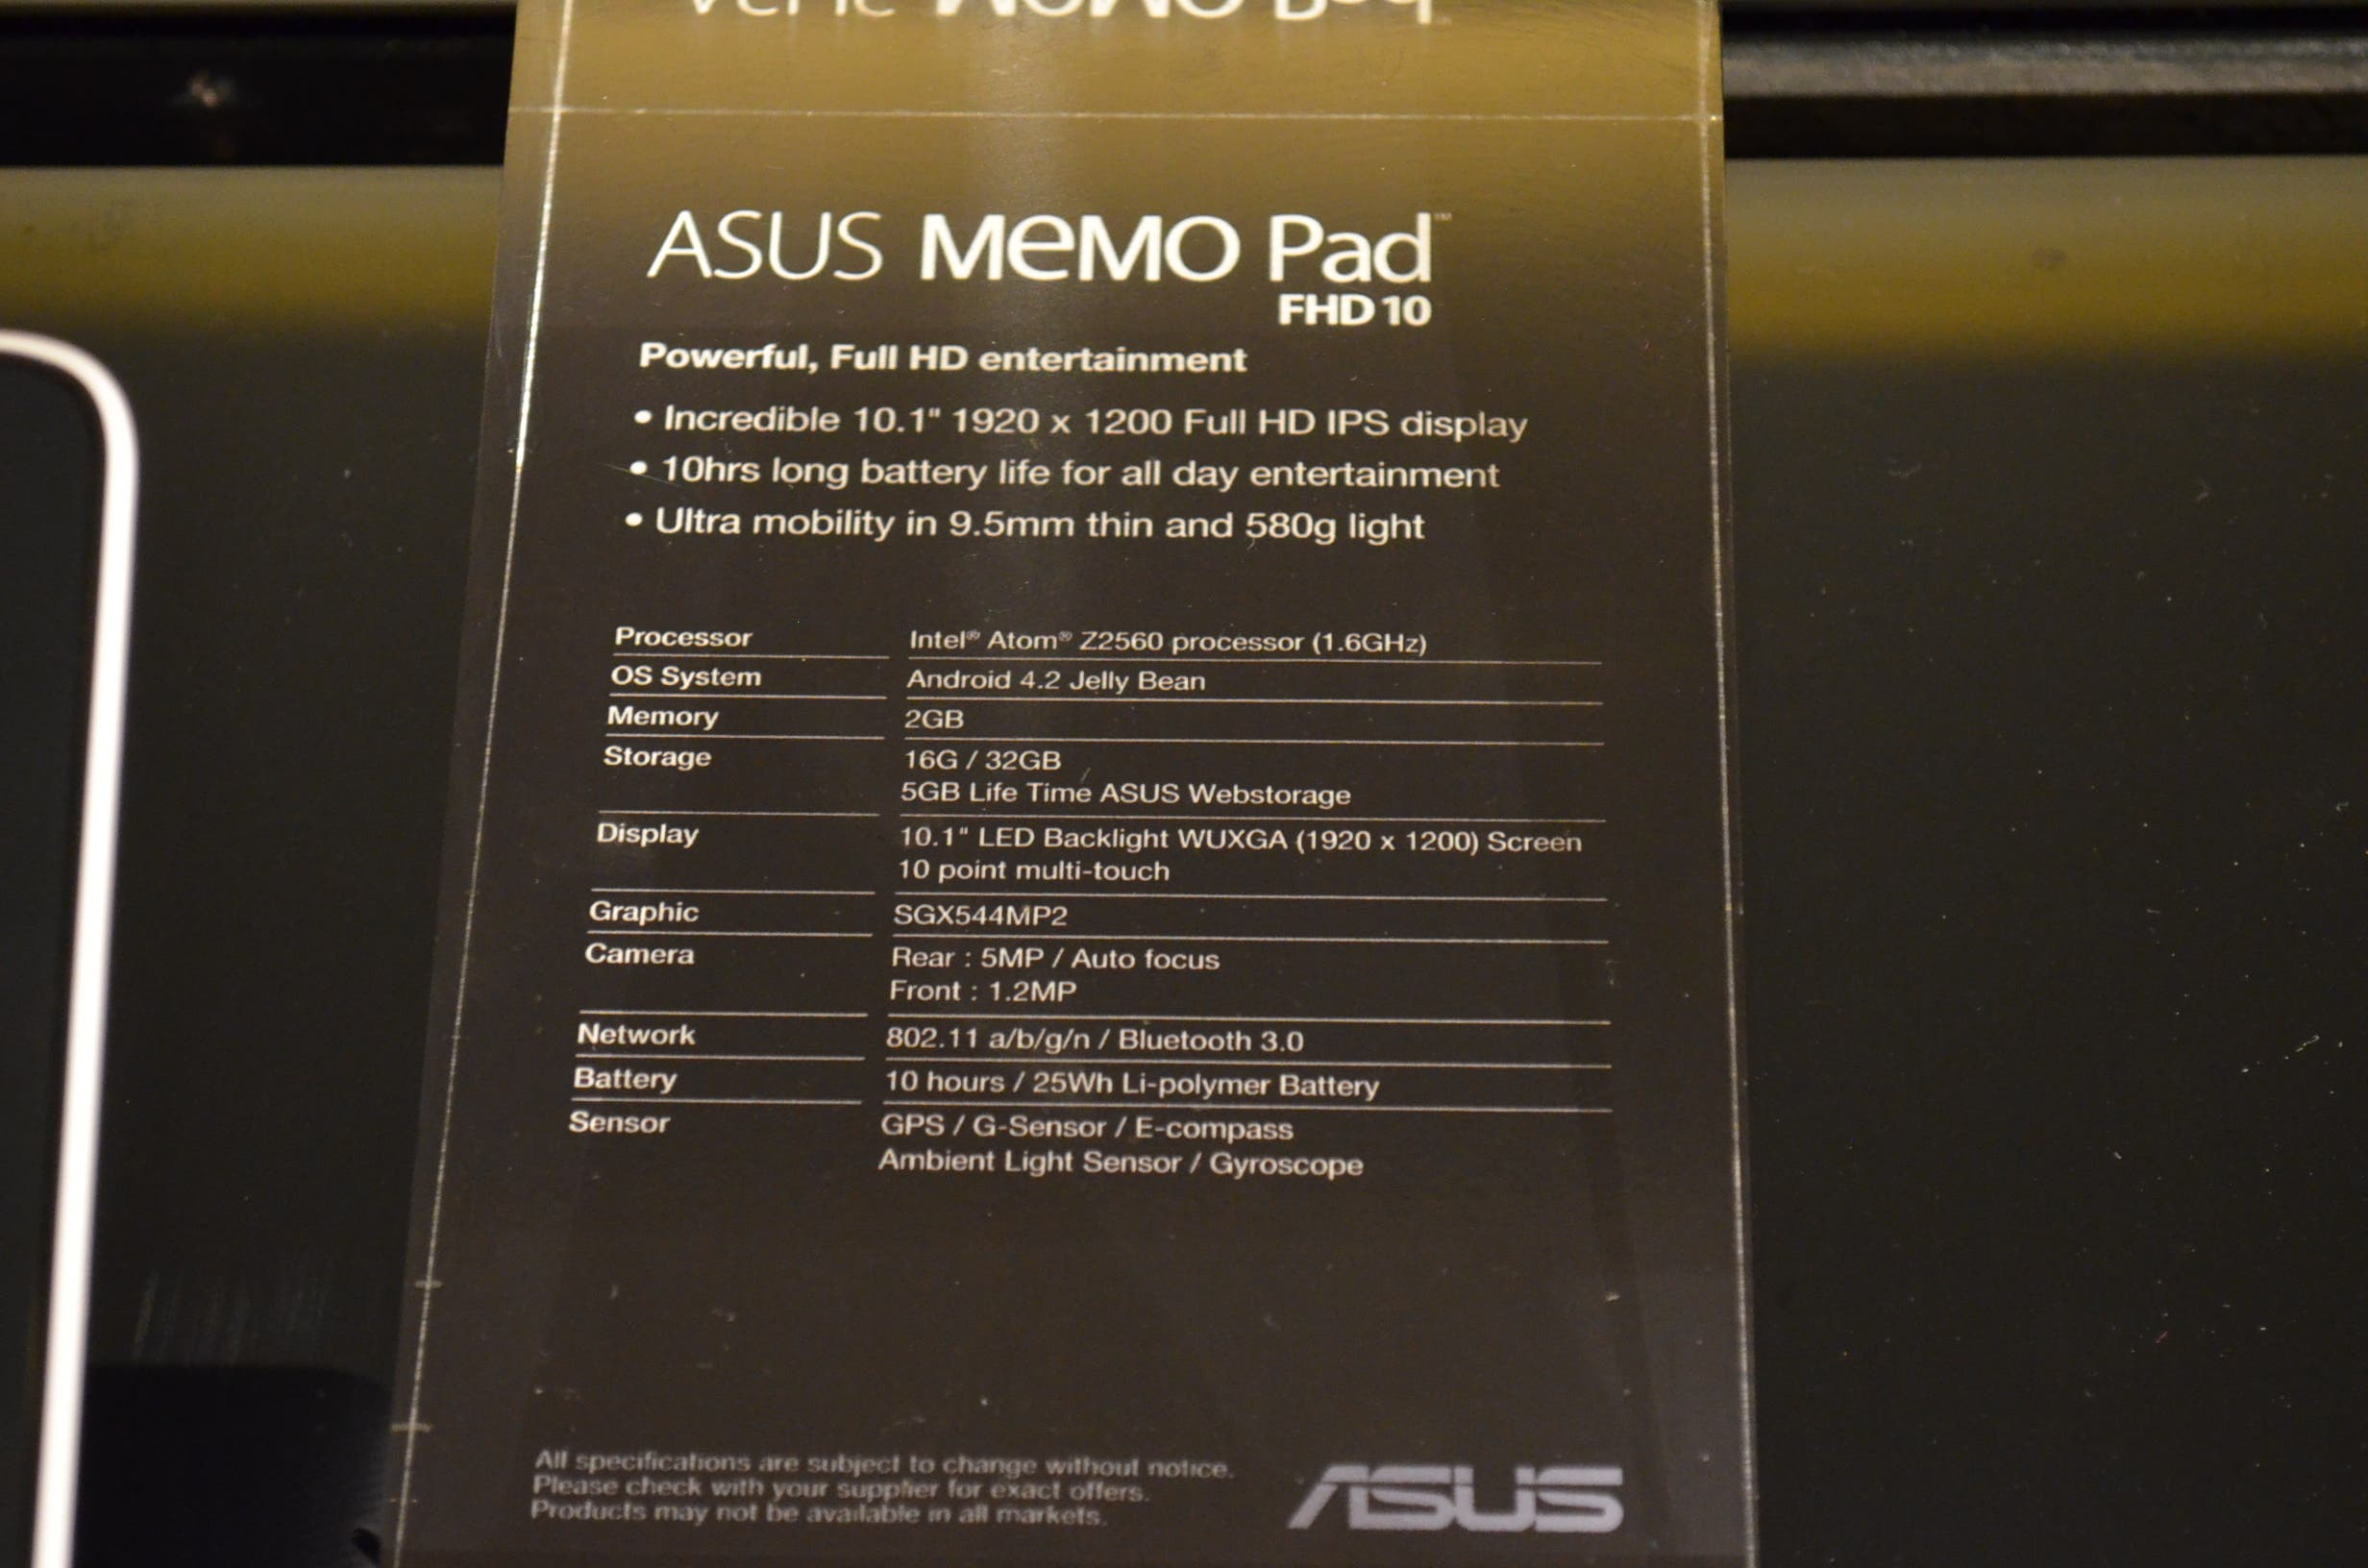 ASUS MeMo Pad FHD 10 1 Computex   ASUS MeMo Pad FHD 10 Hands On [Video]